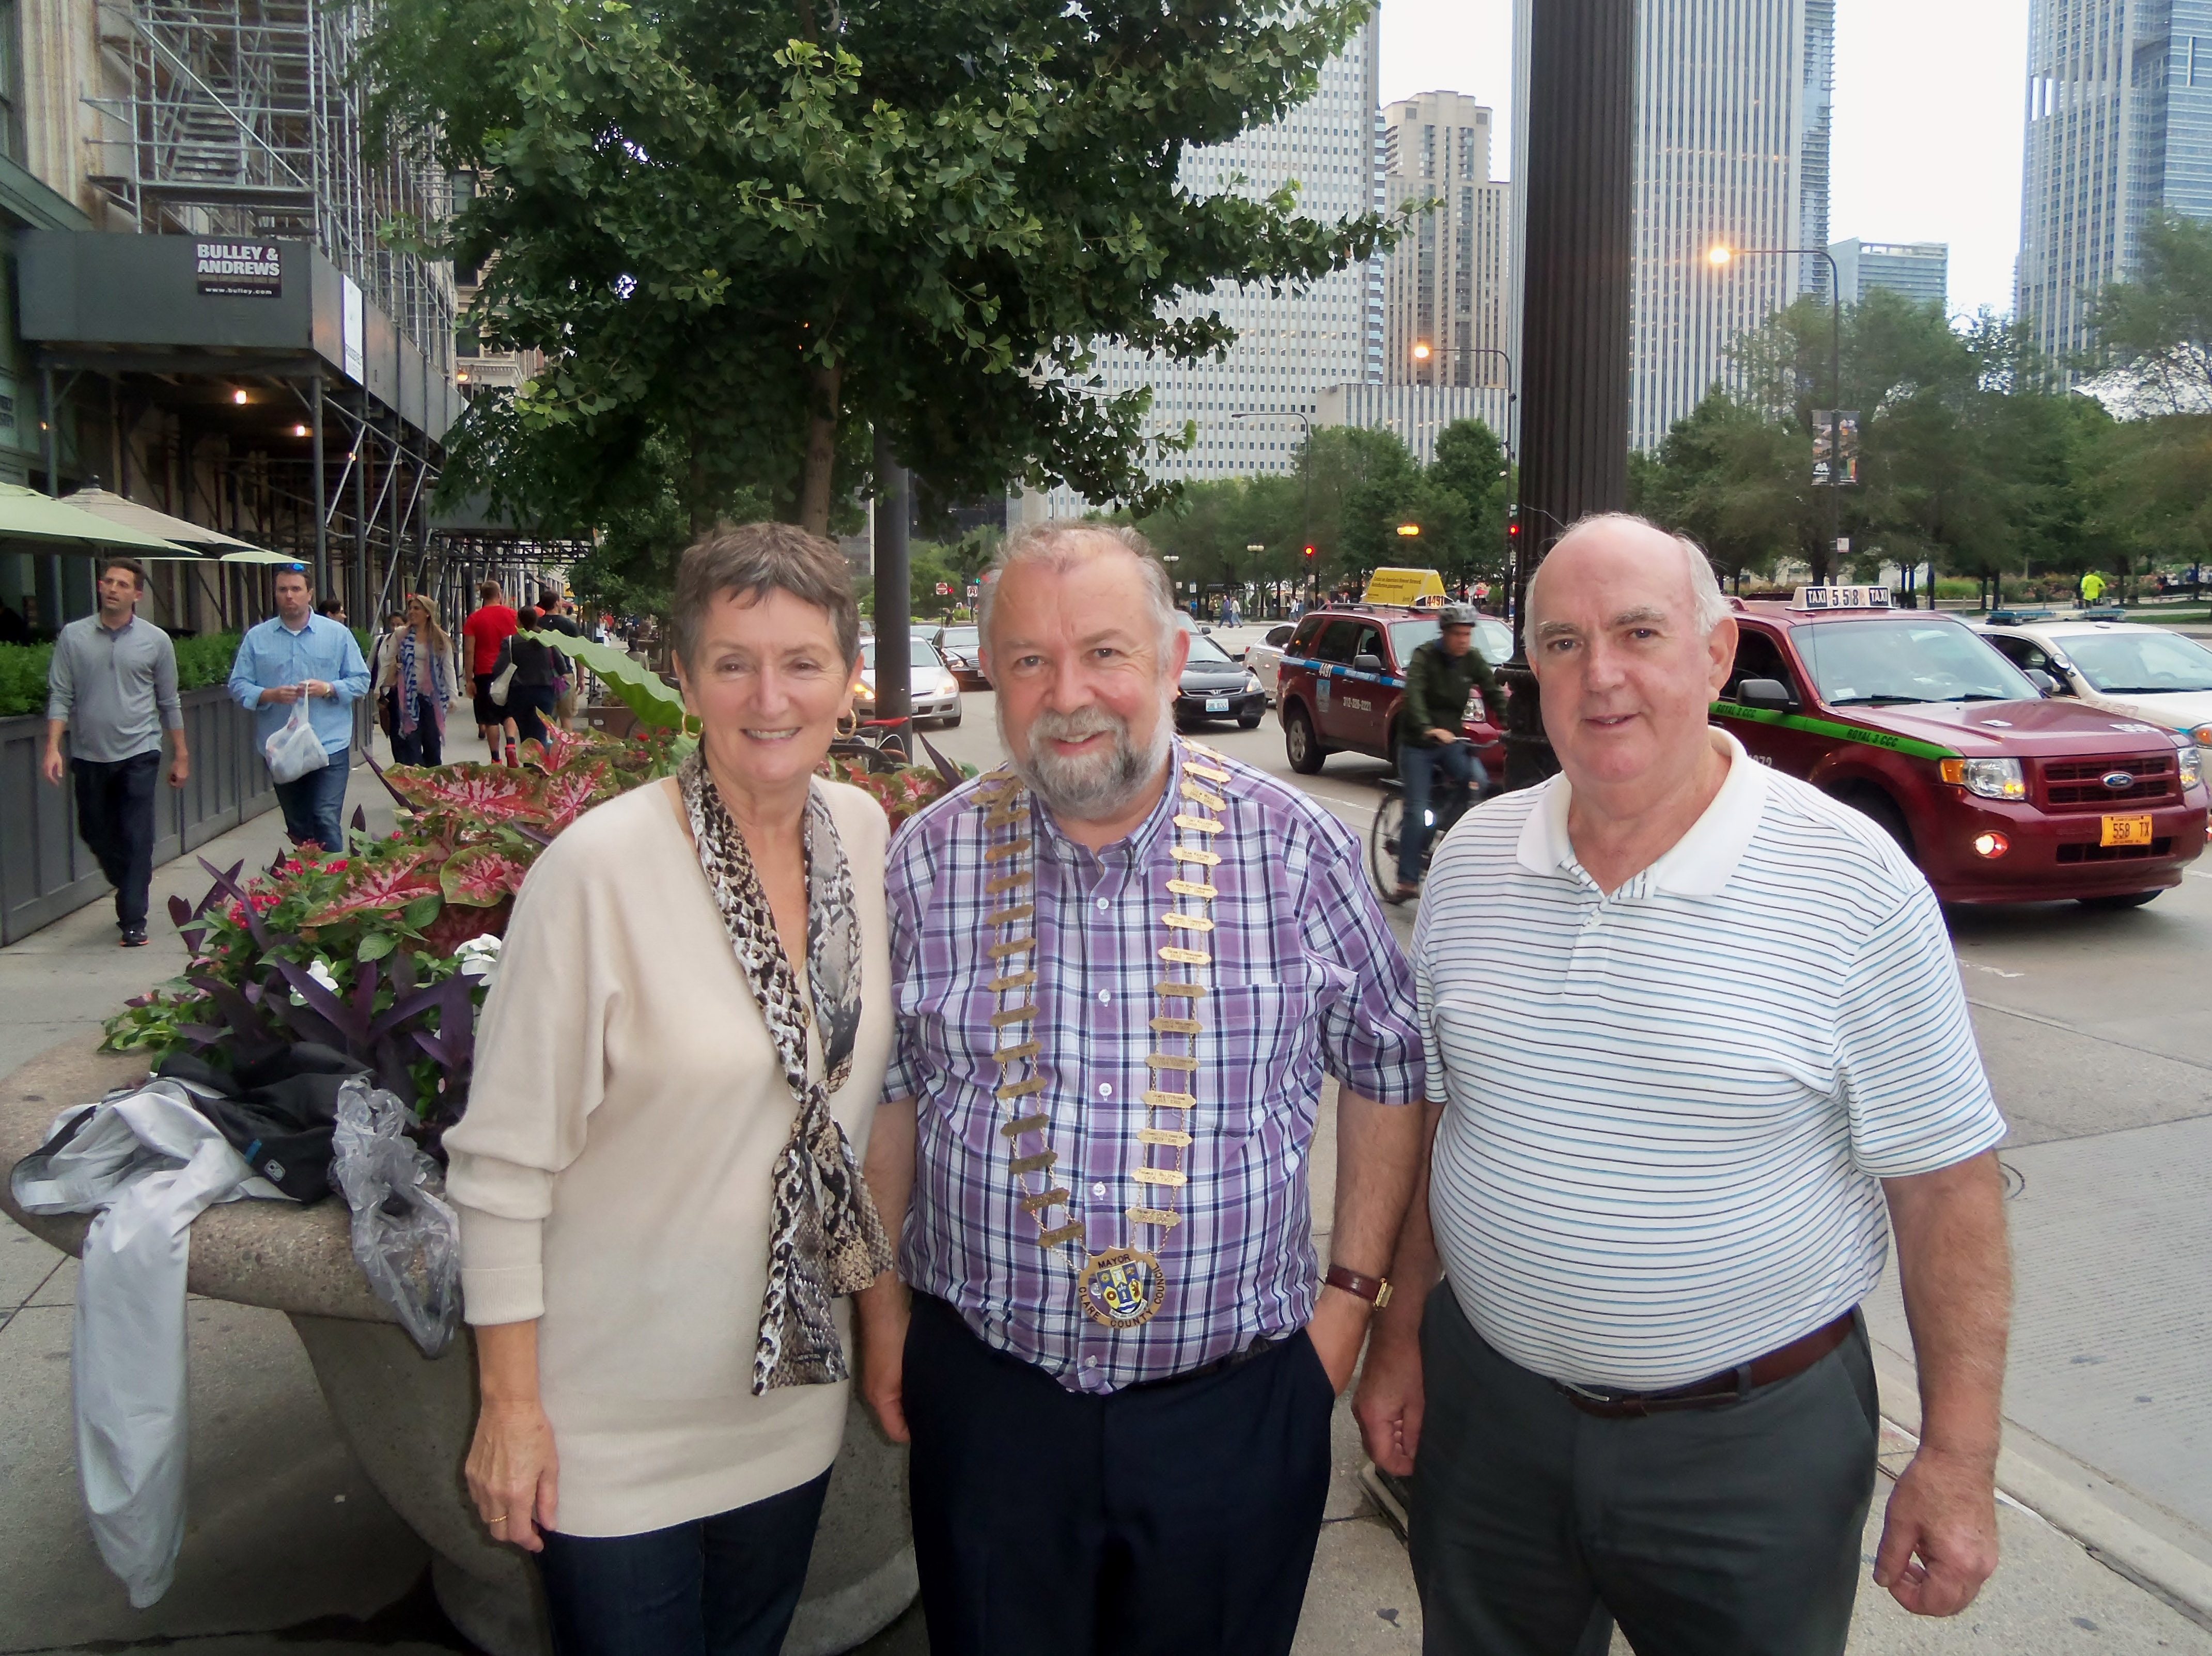 Cathaoirleach of Clare County Council, Cllr John Crowe met with former Shannon Airport employees Margaret and Frank Furey during a visit to Chicago, Illinois, USA.